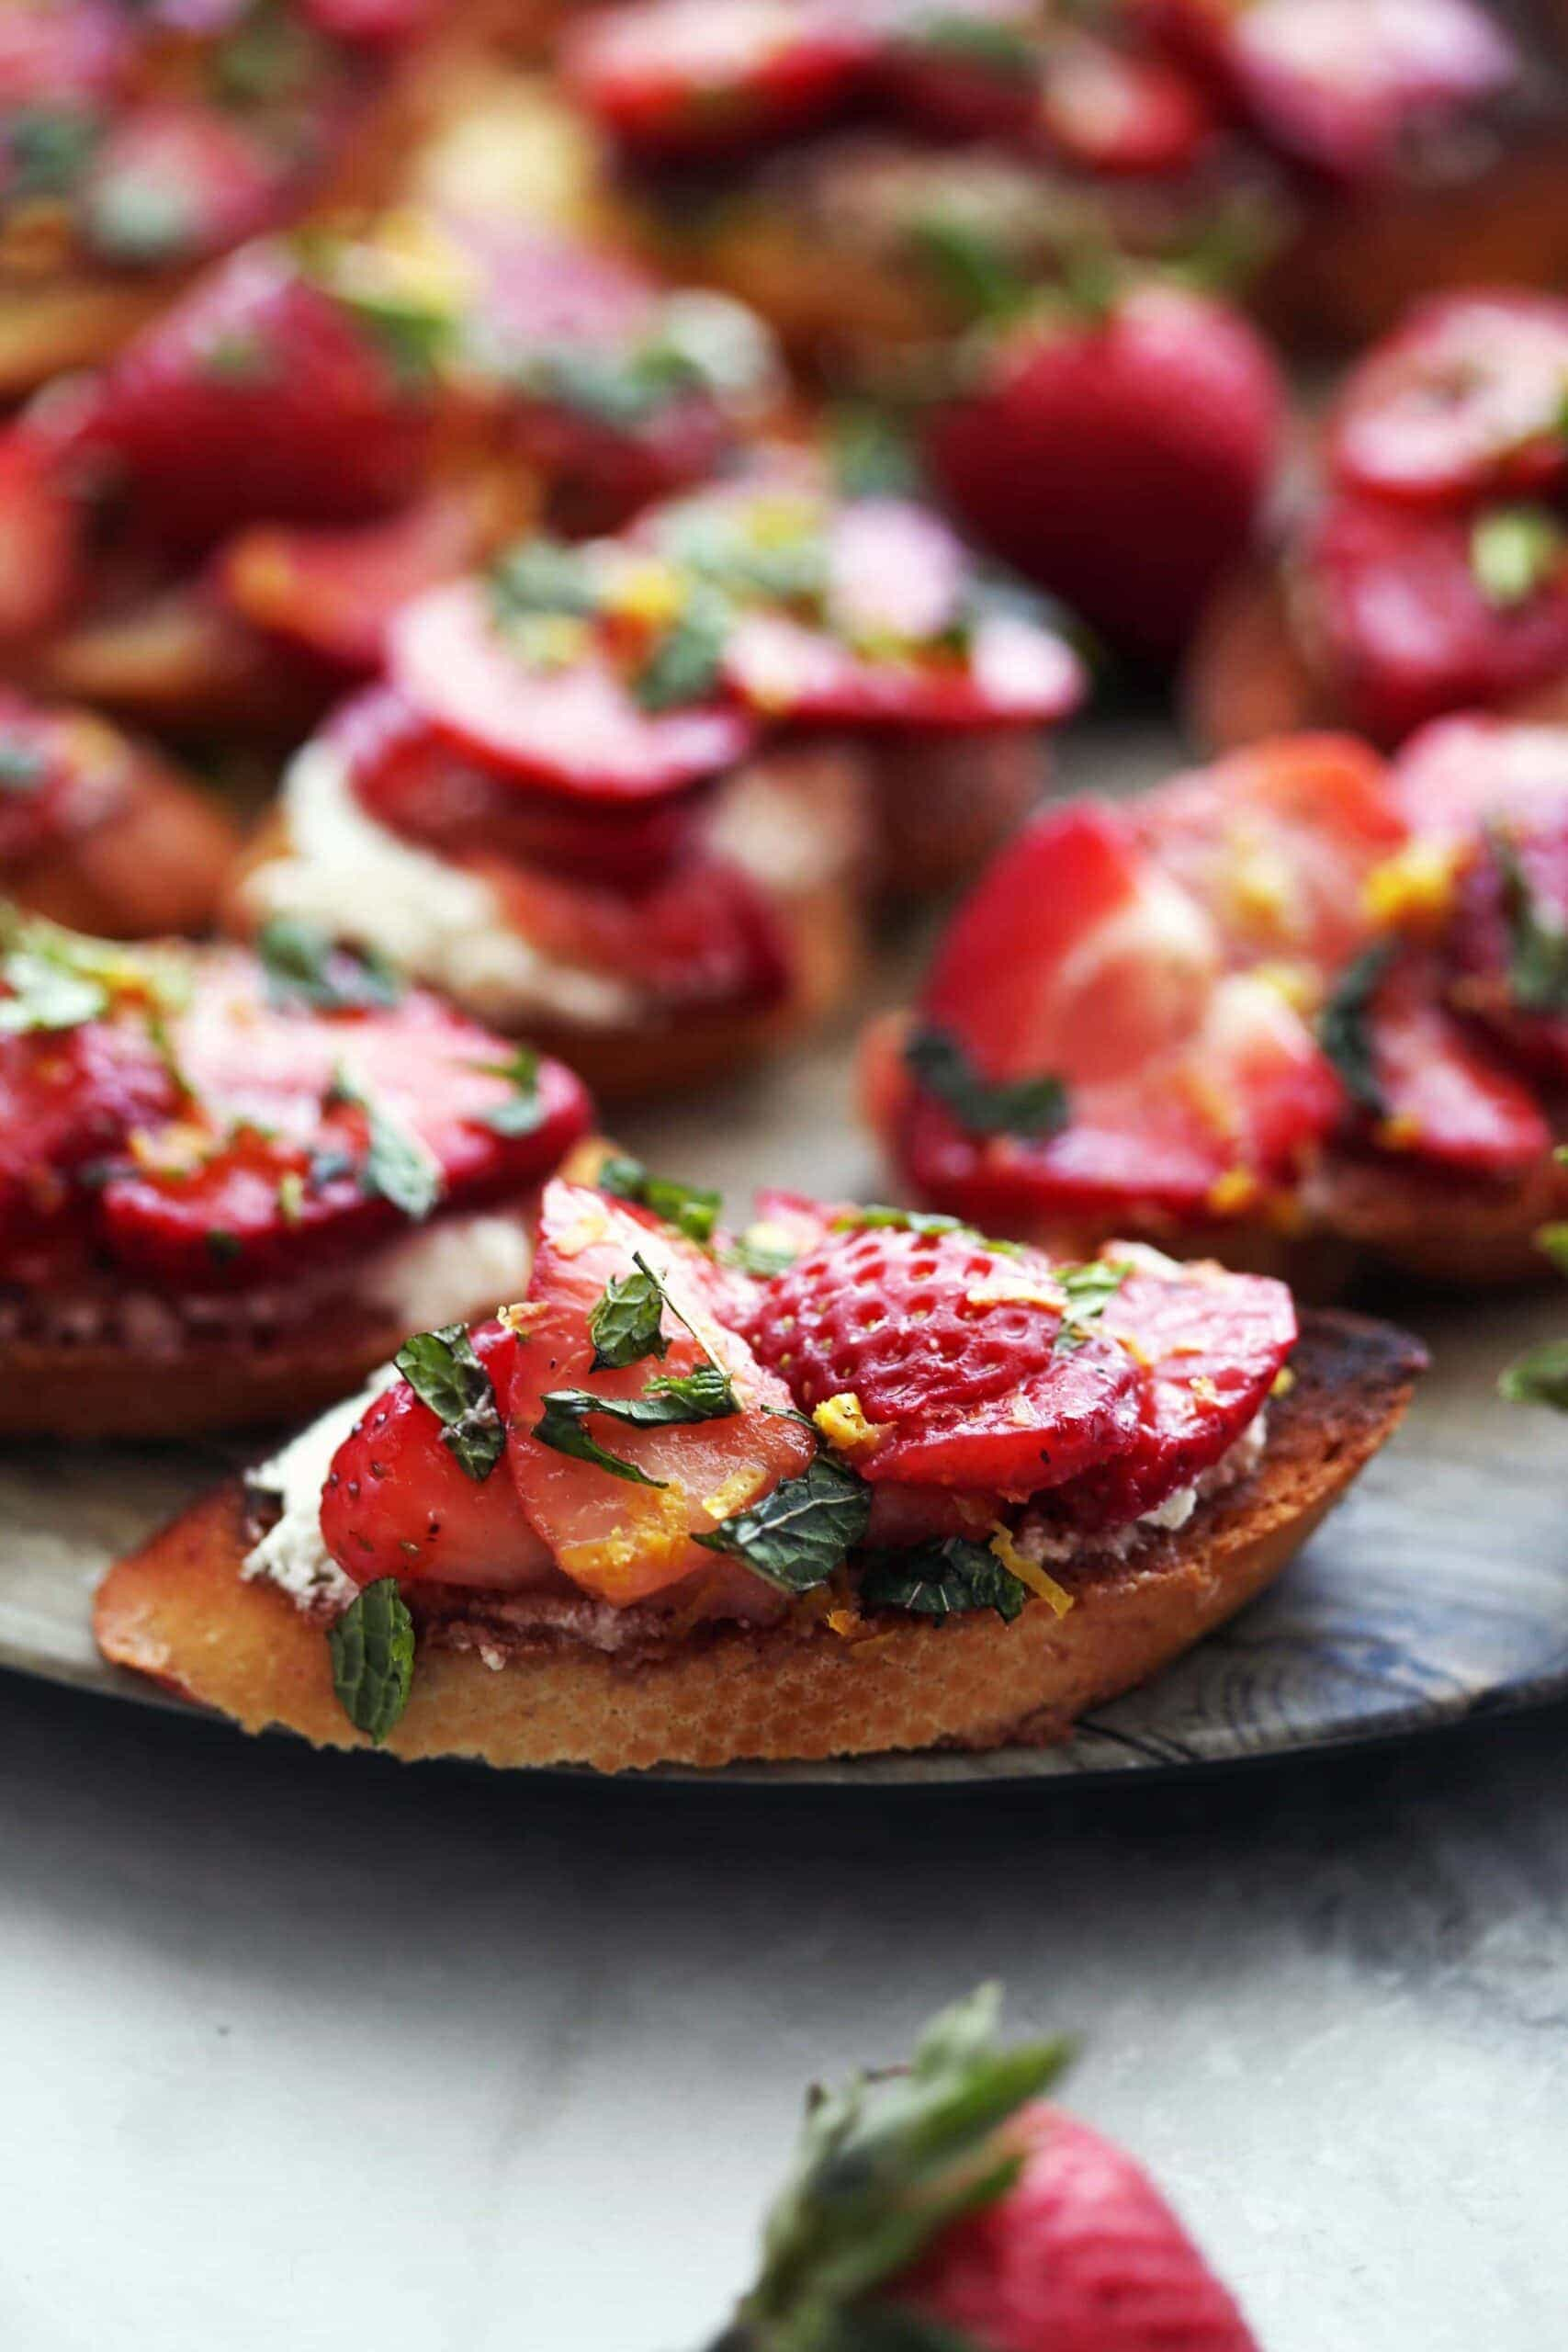 Balsamic Strawberry Ricotta Crostini